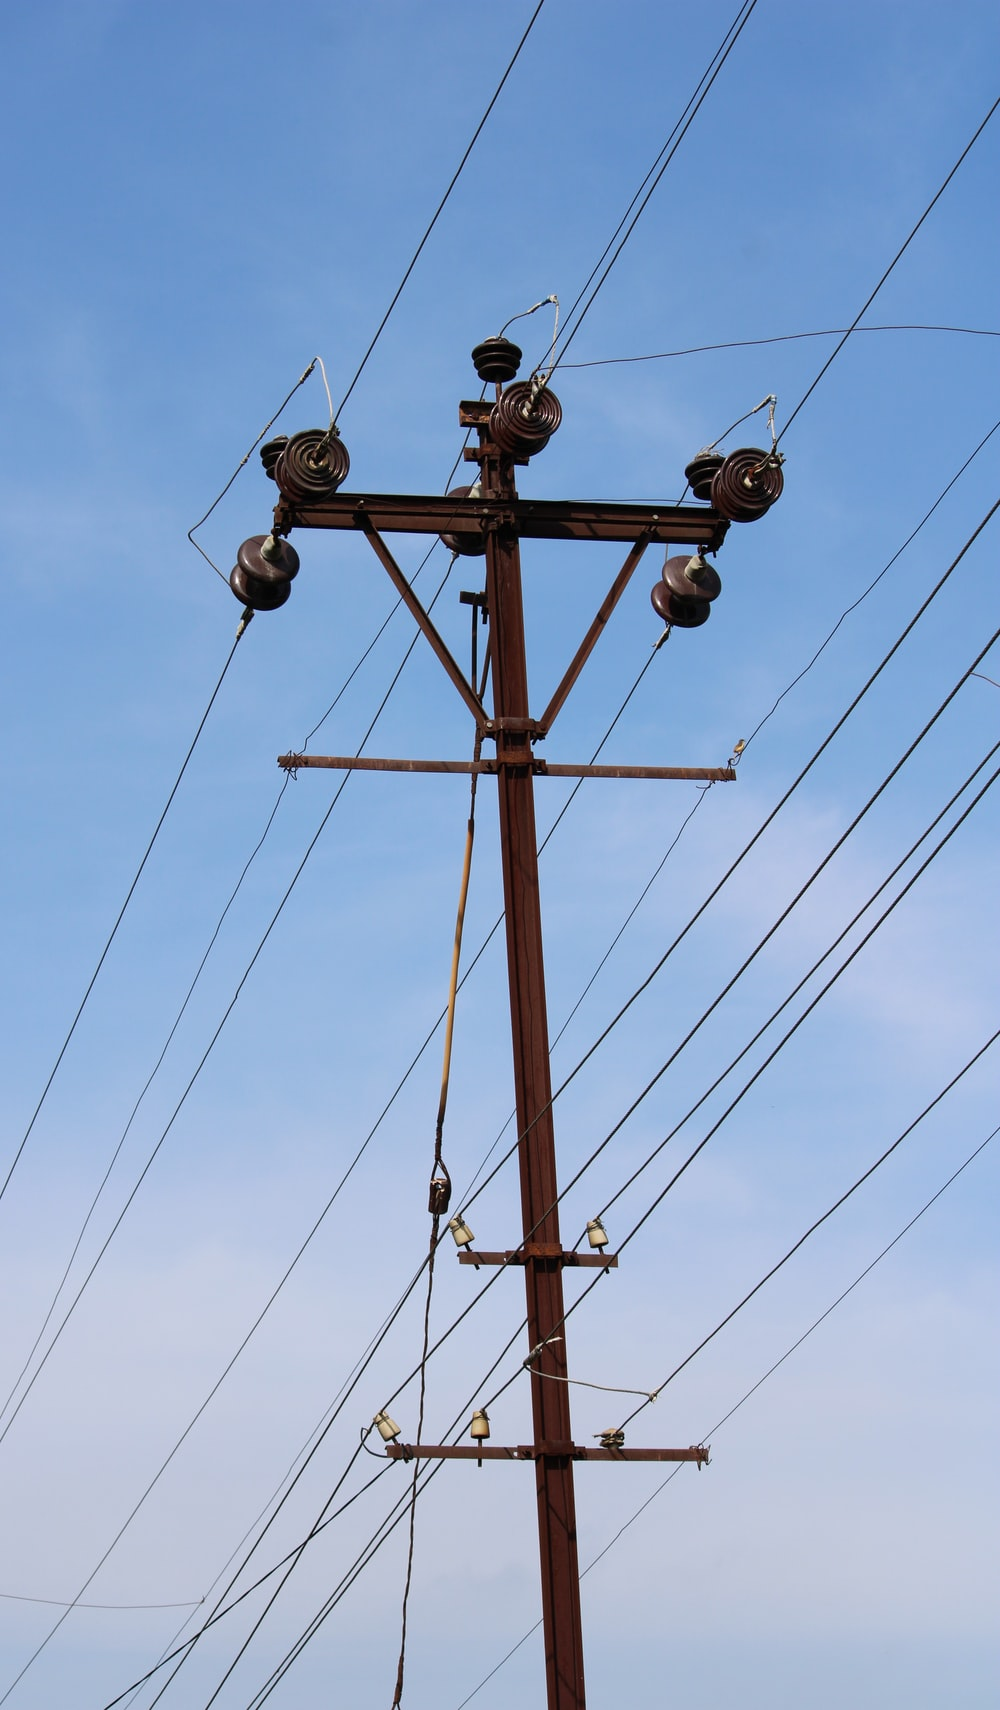 brown wooden electric post under blue sky during daytime